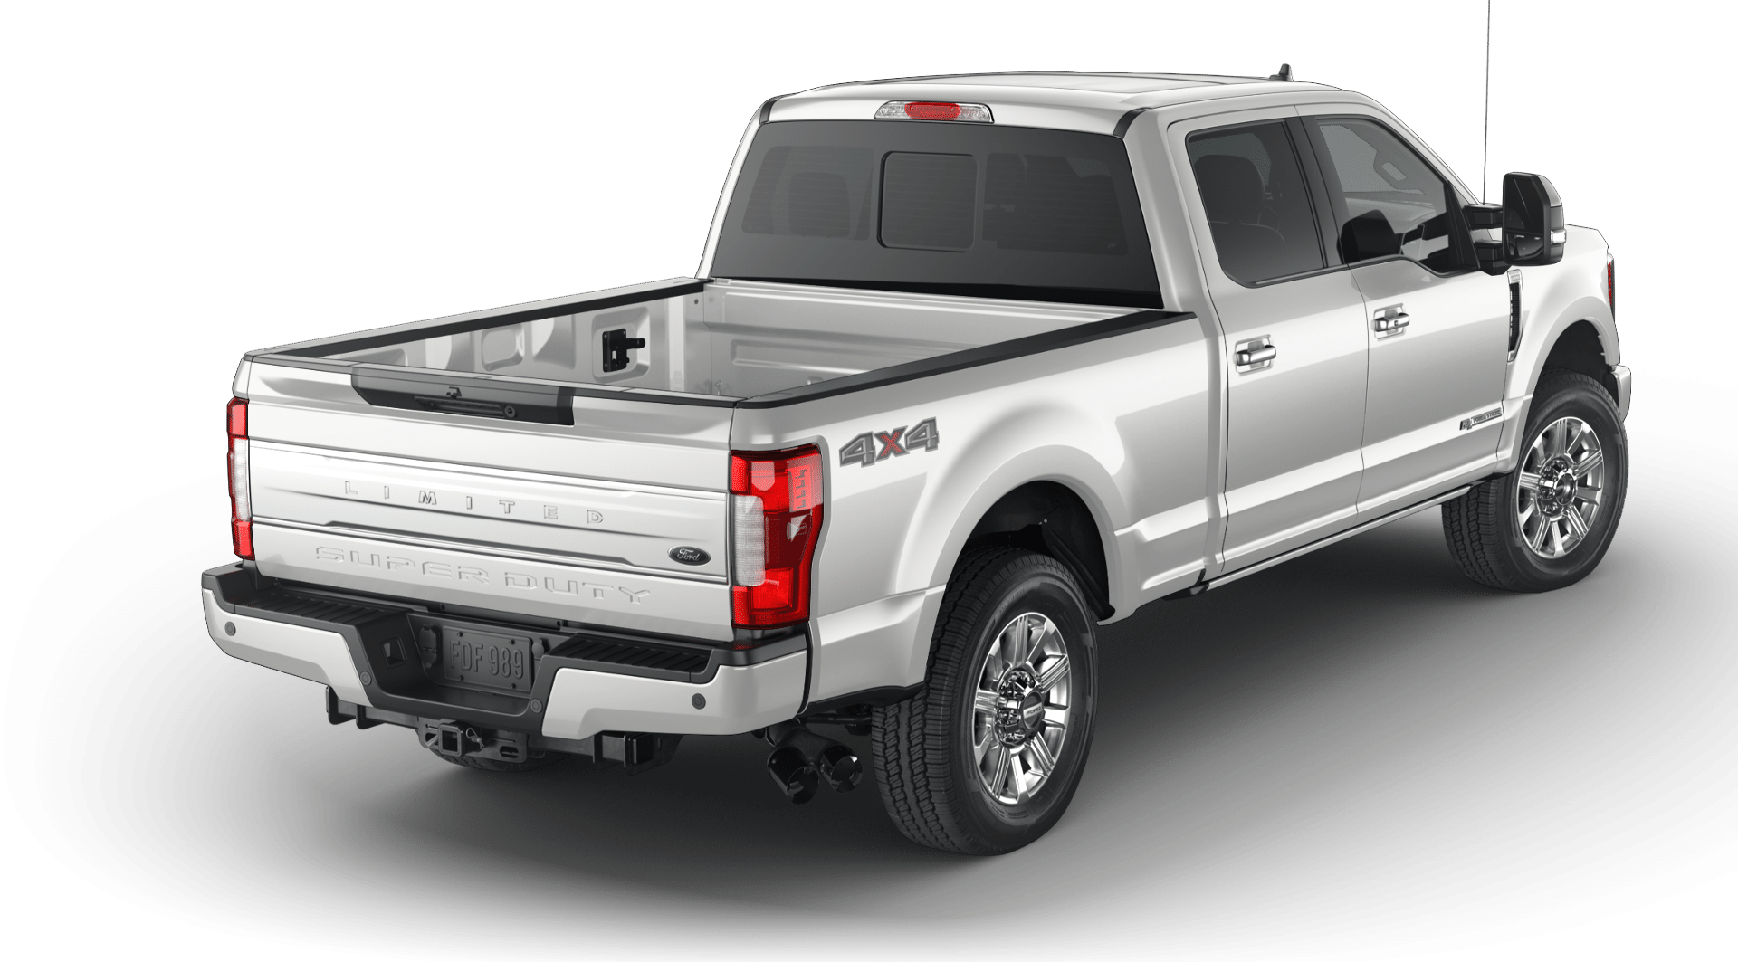 Ford F-250 2019 Limited 6.7 V8 OHV Power Stroke® Turbo Diesel Дизель 6-ст. АКПП Torqshift® Heavy-Duty Selectshift™ Дизель Полный